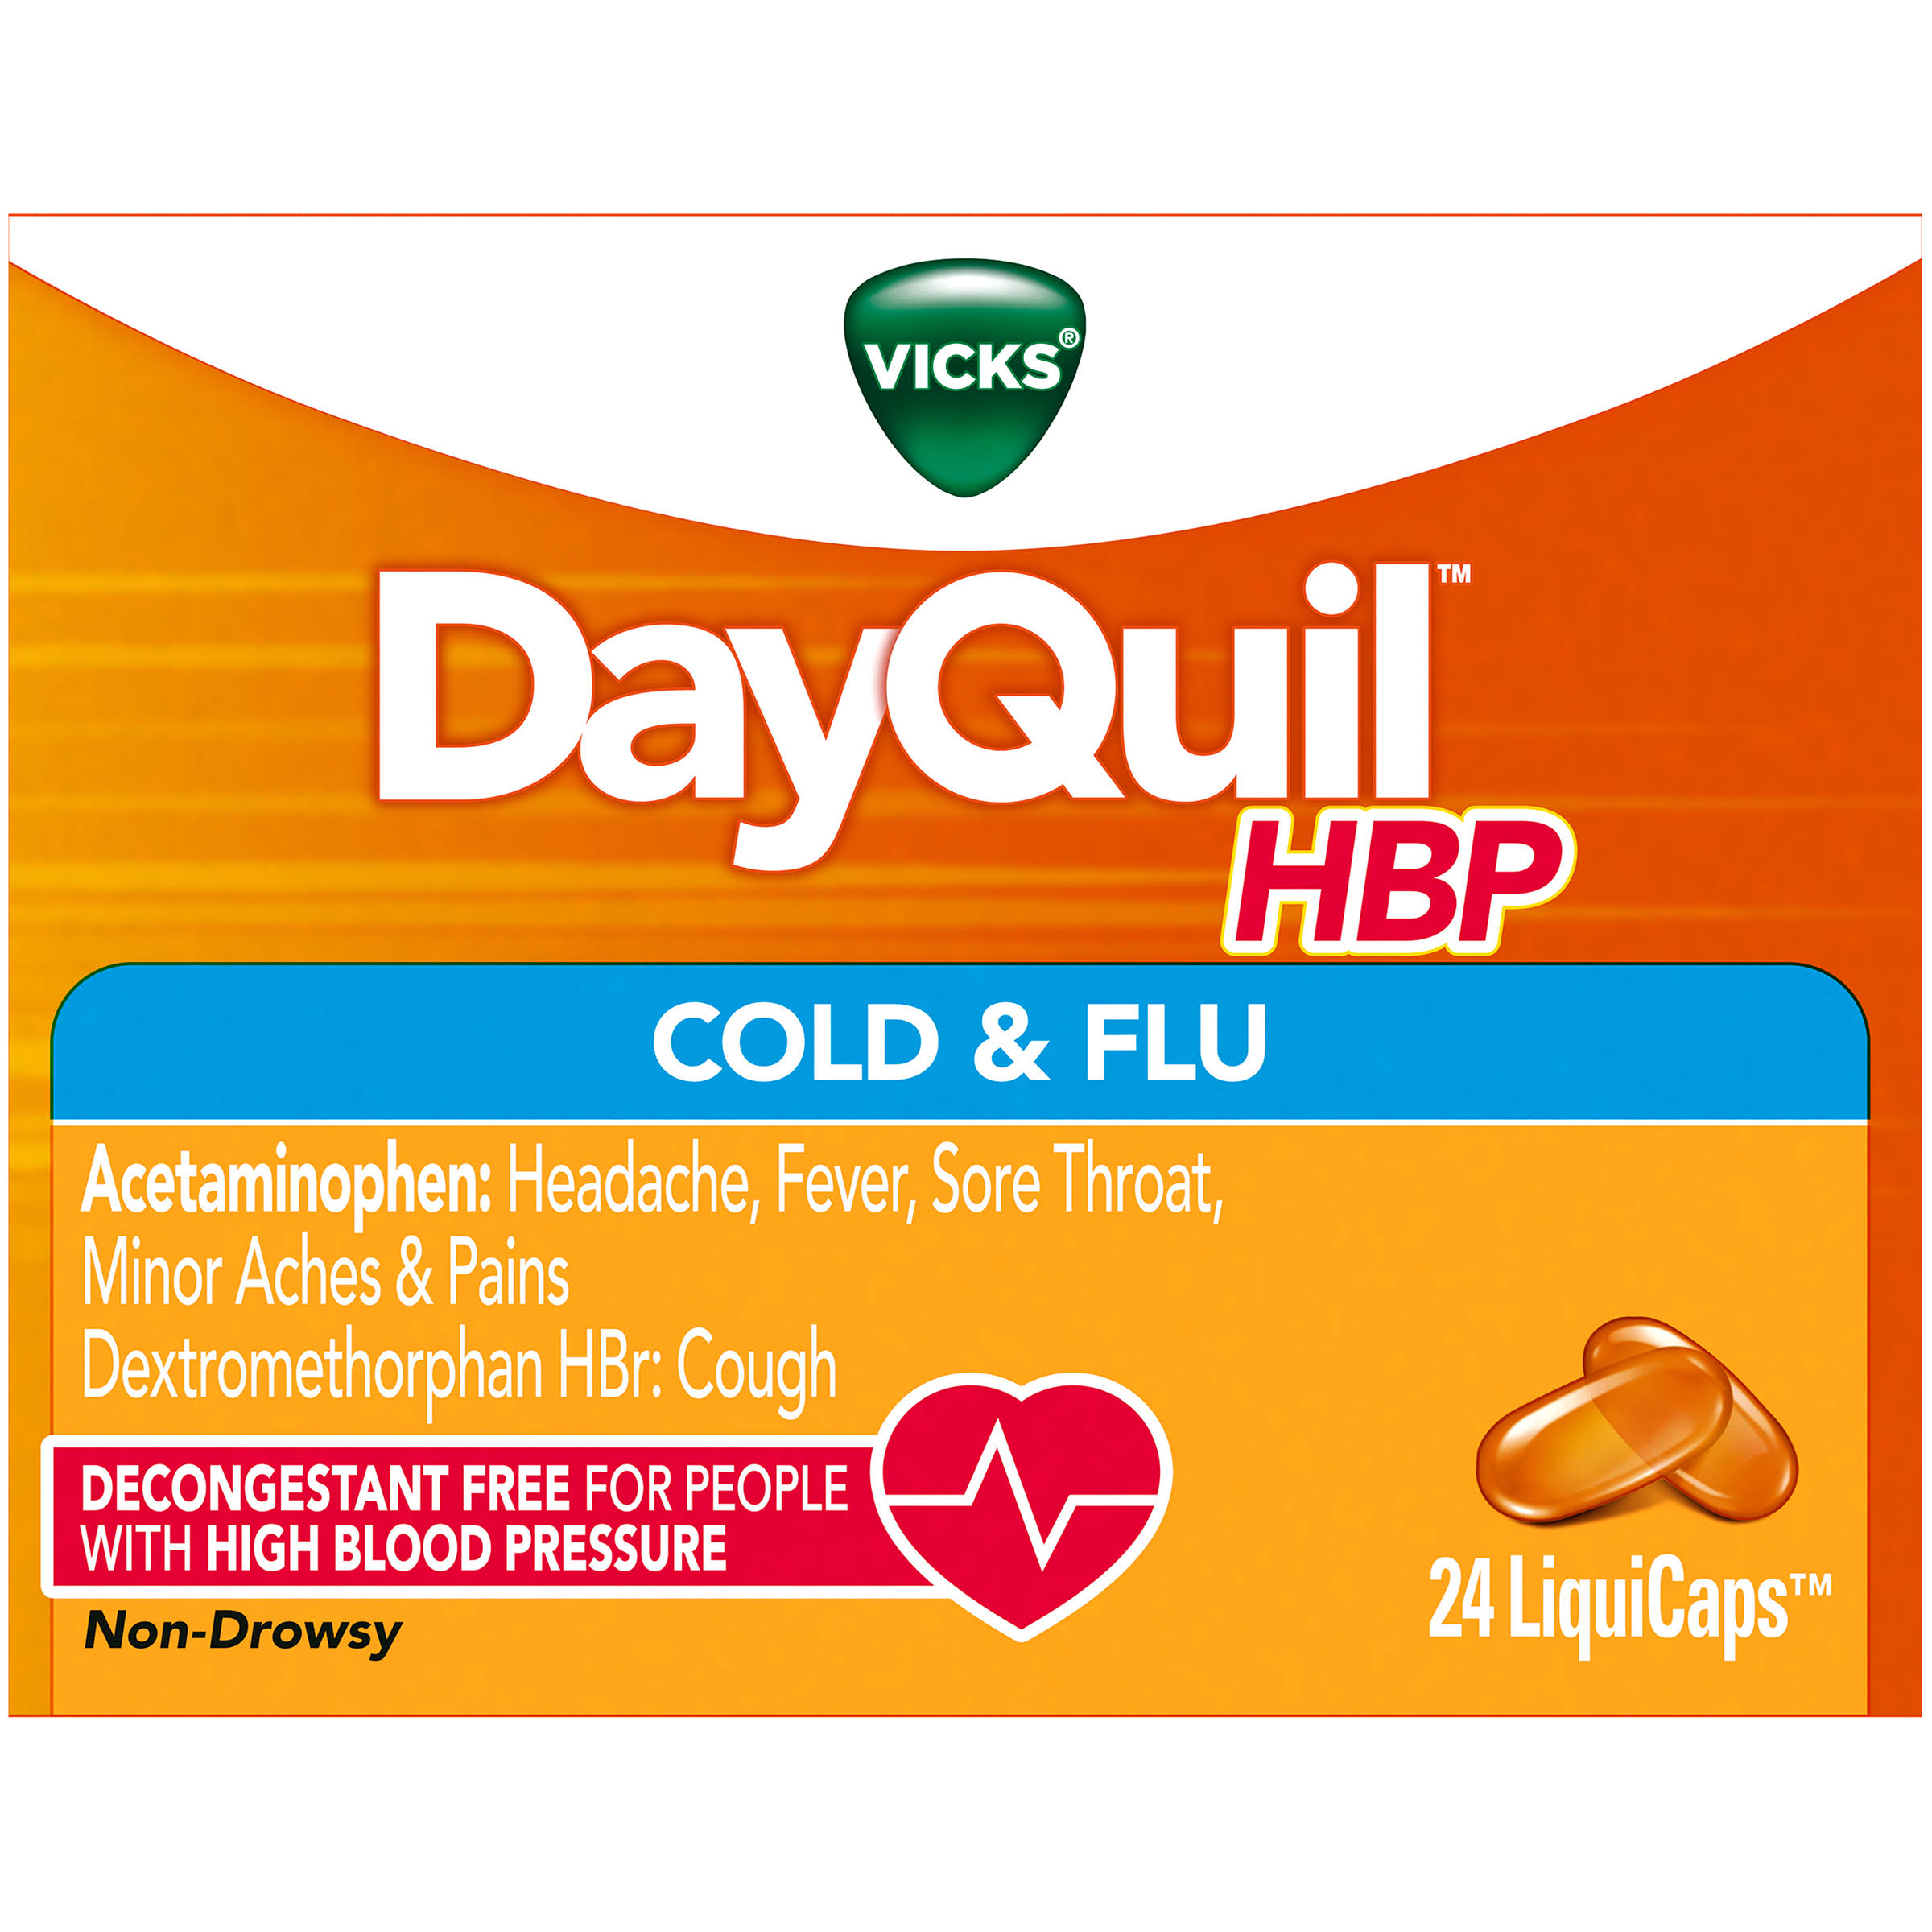 Vicks DayQuil Cold & Flu Daytime LiquiCaps - 24ct, Non-Drowsy